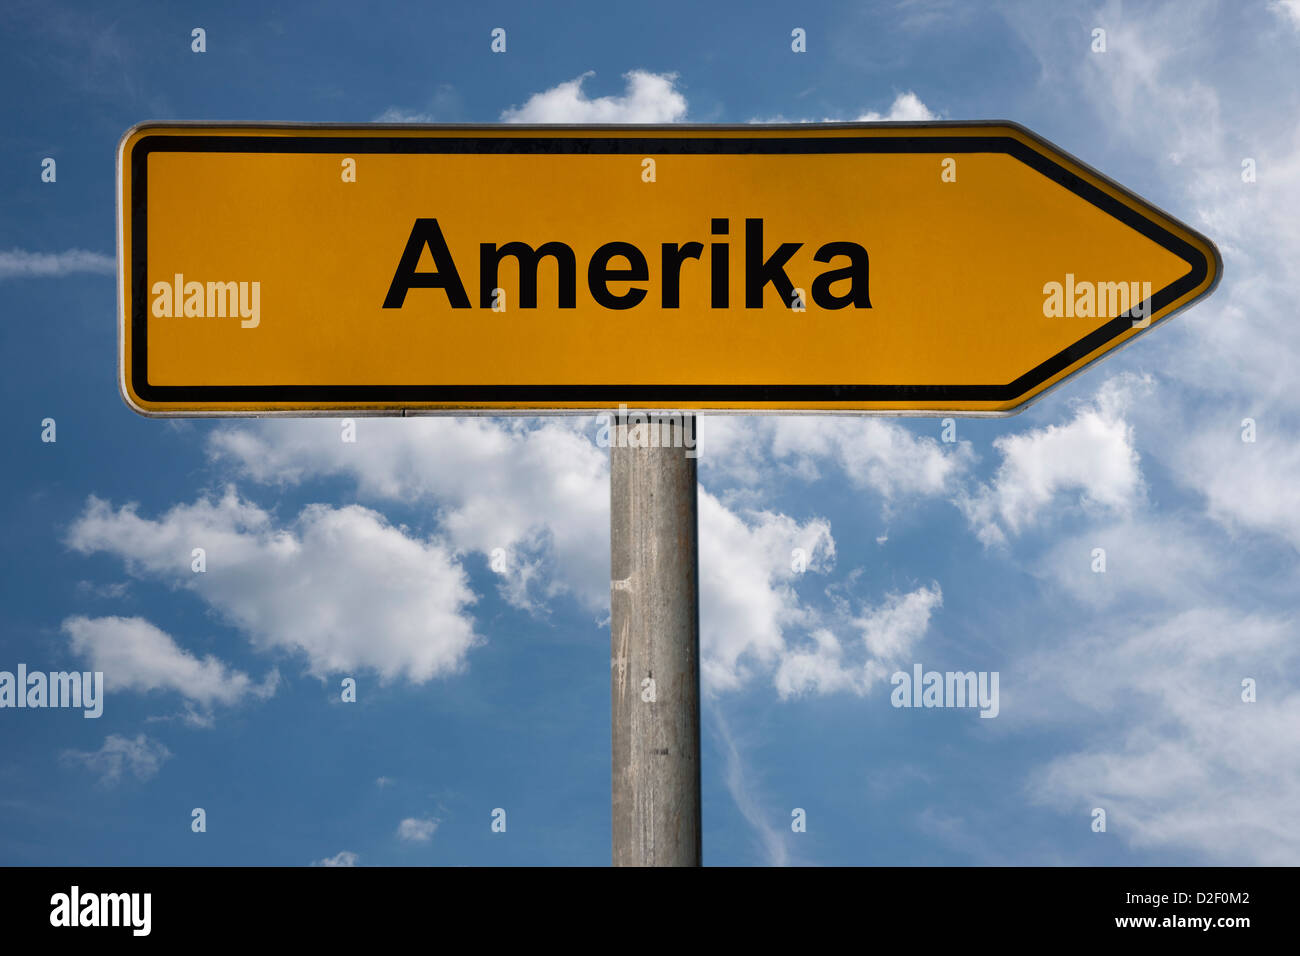 A signpost shows directory Amerika (America). America is the smallest locality of Penig, Saxony, Germany, Europe - Stock Image